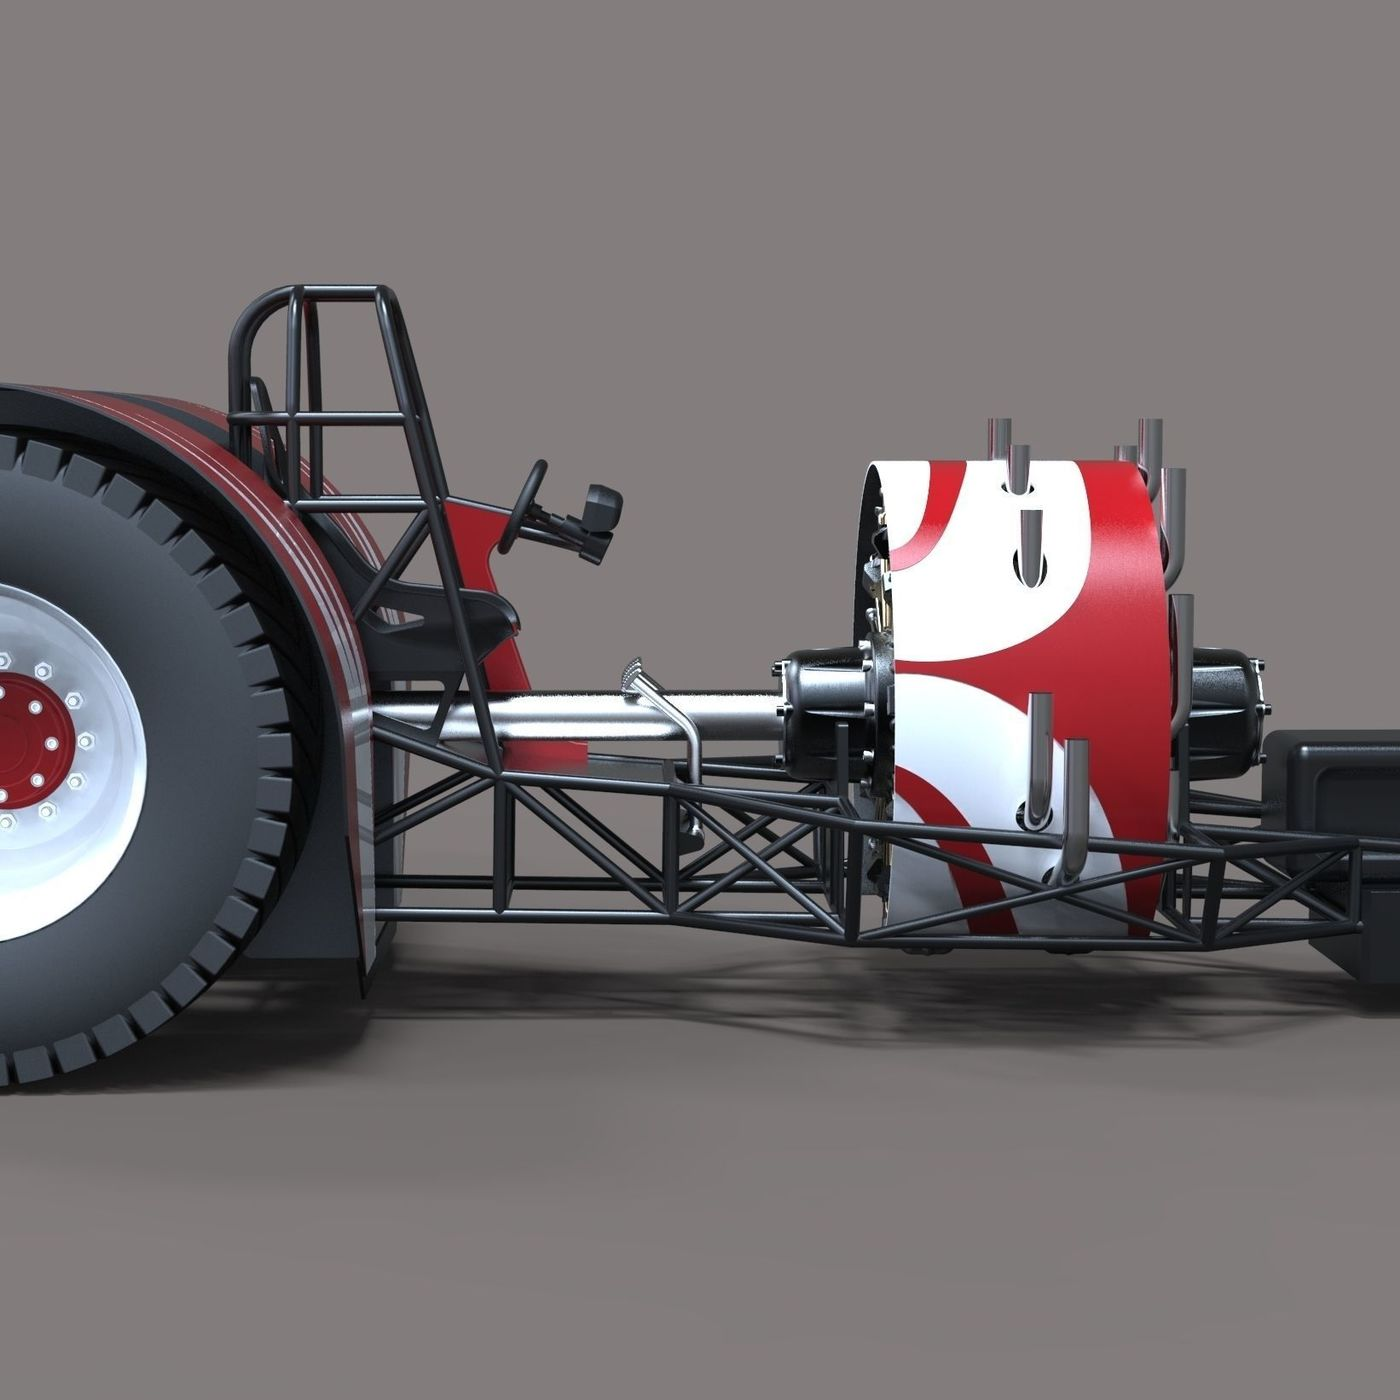 Pulling tractor with radial engine